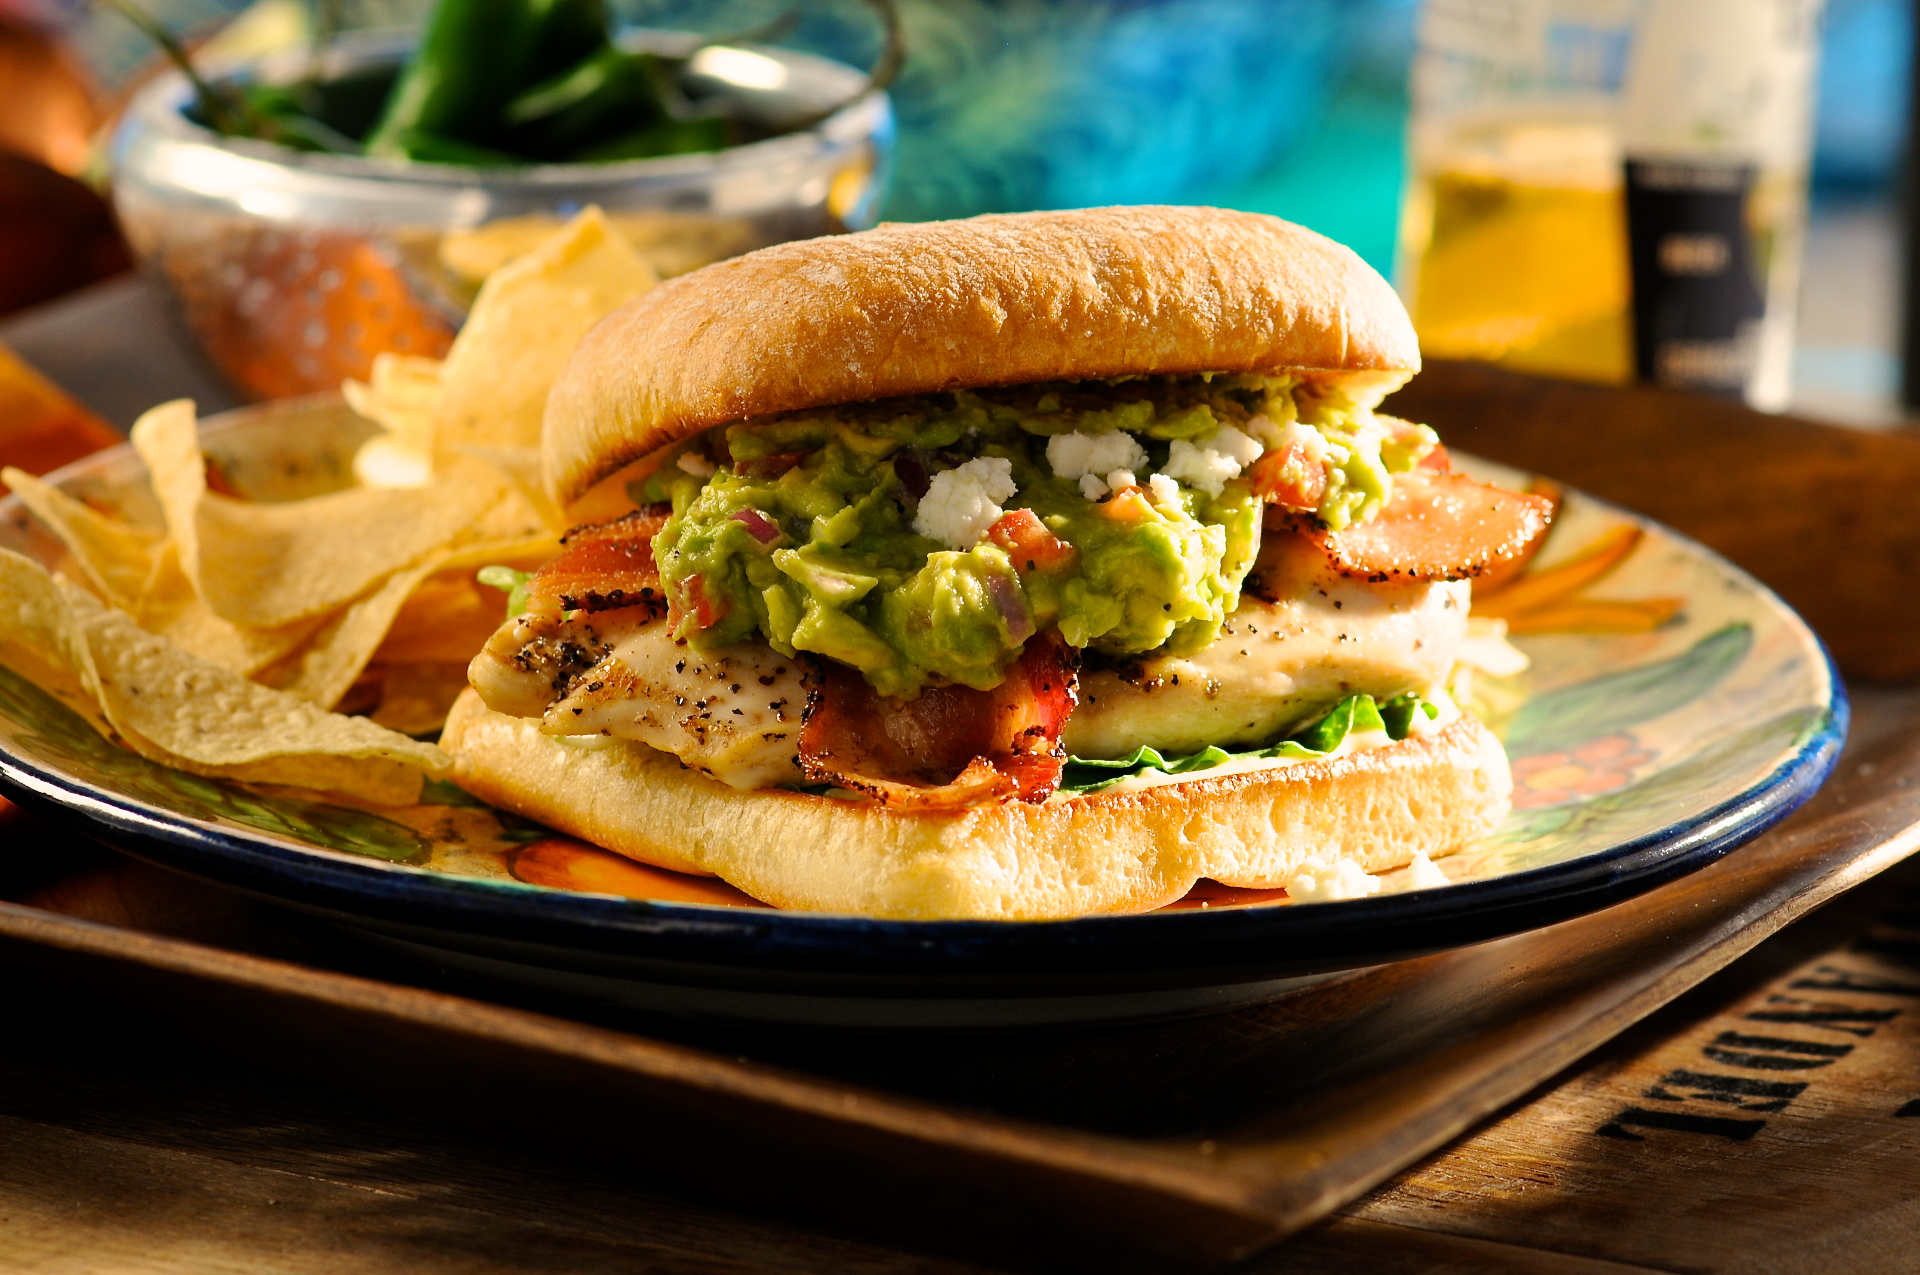 Add a Mexican accent to your run-of-the-mill club sandwich with a scoop of fresh guacamole.The crumbled cojita cheese adds another nice layer of flavor. Don't skimp here... it's worth it.